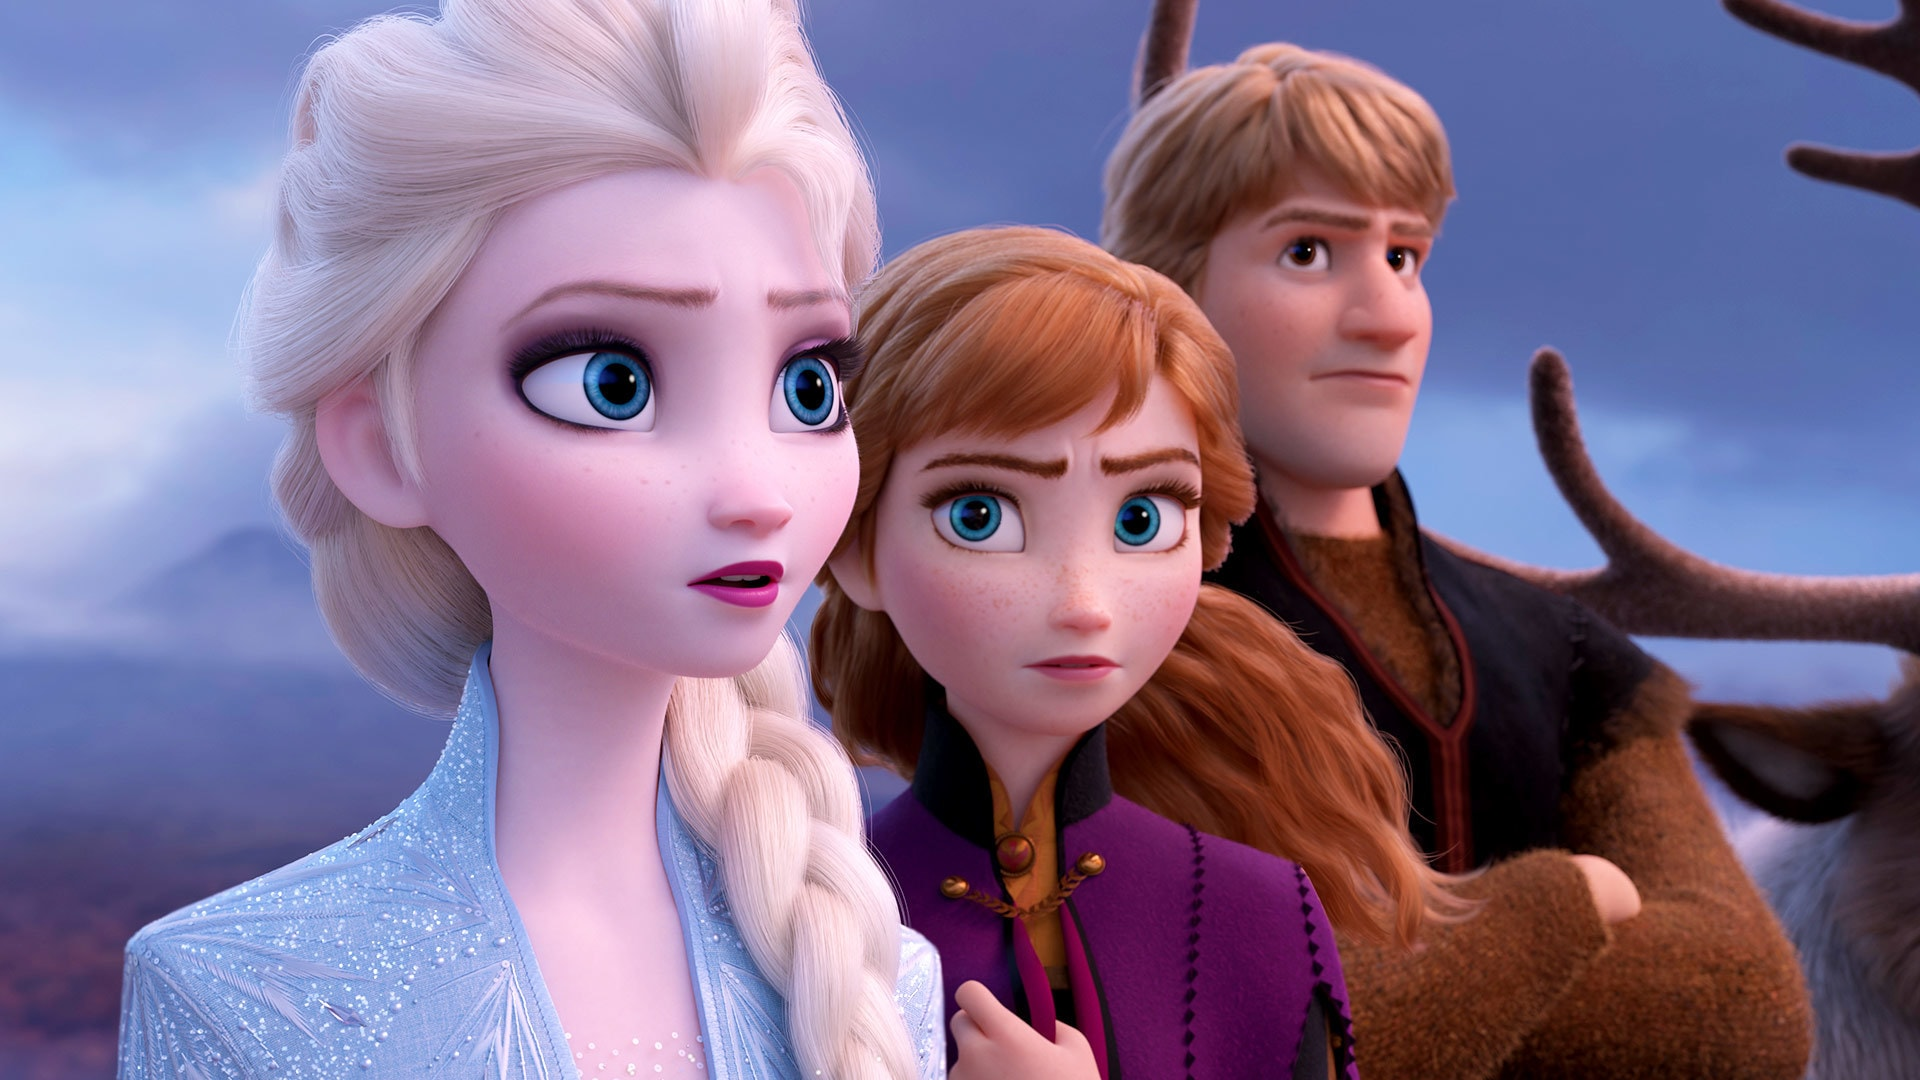 frozen full movie in english hd download